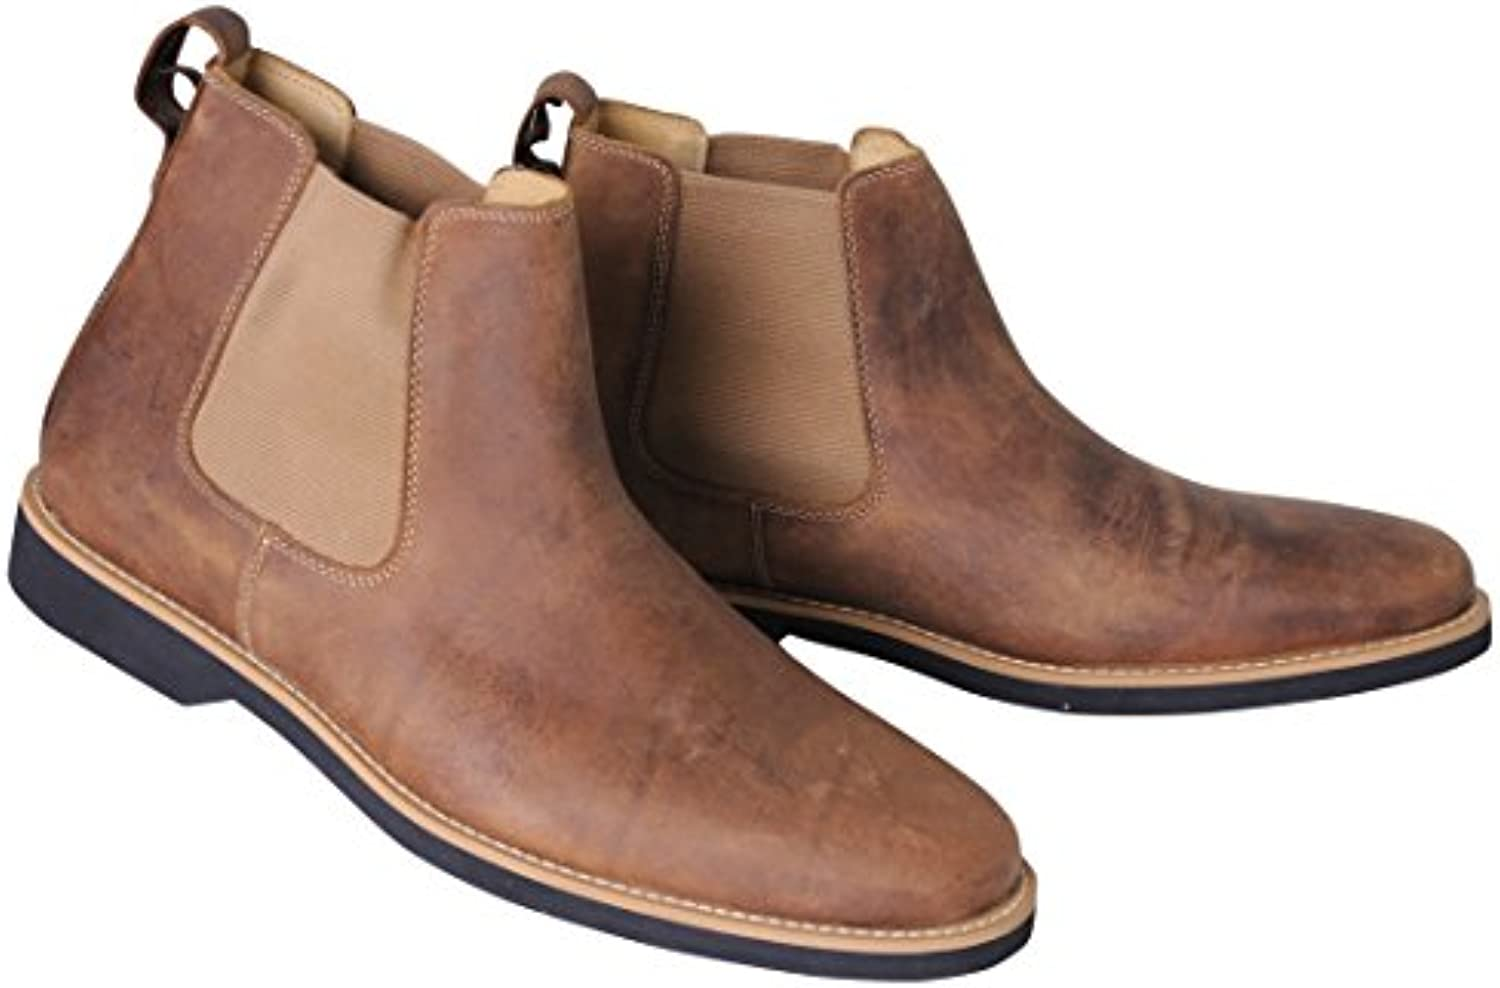 AnatomicCo Cardoso Mustang Tobacco Chelsea Boots